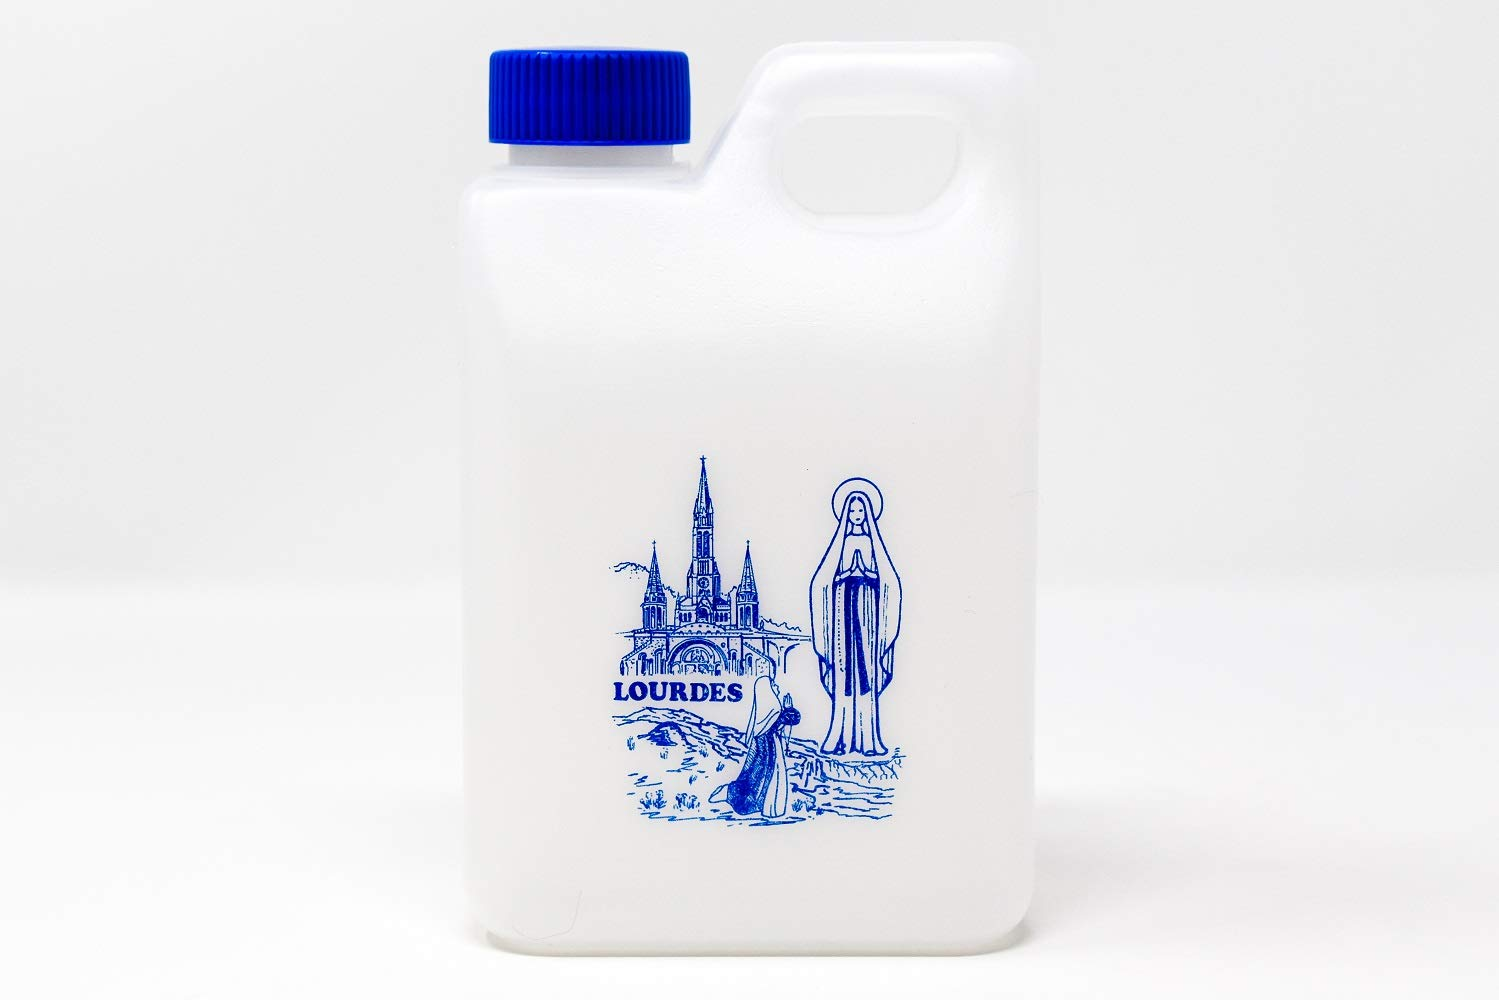 Lourdes holy water container 0.75 liters (0.2 gallons) - filled with Lourdes water